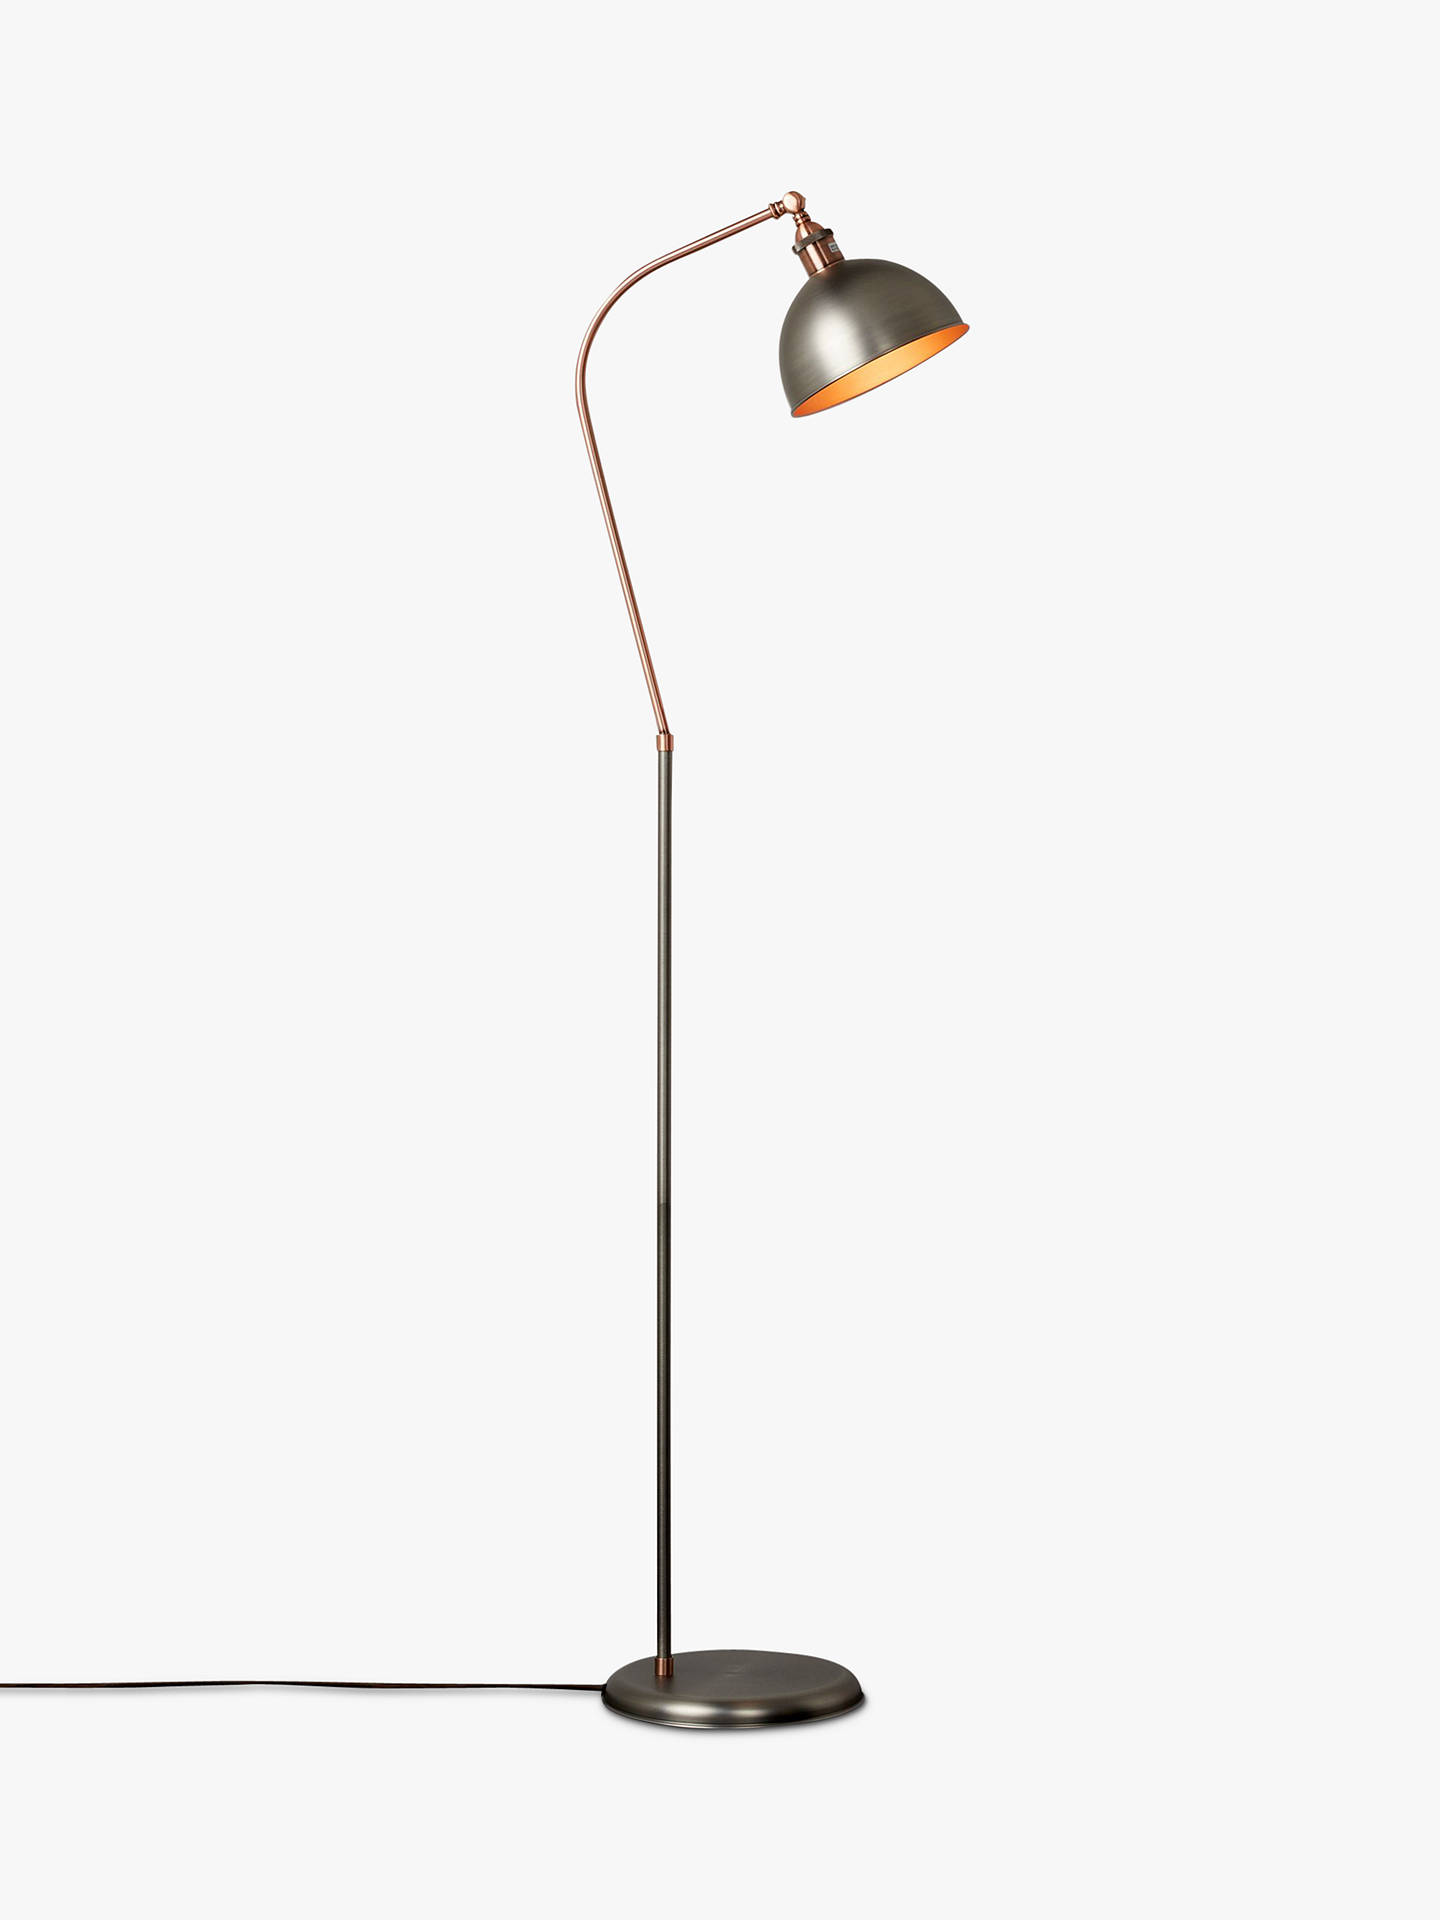 Buyjohn lewis partners baldwin floor lamp pewter online at johnlewis